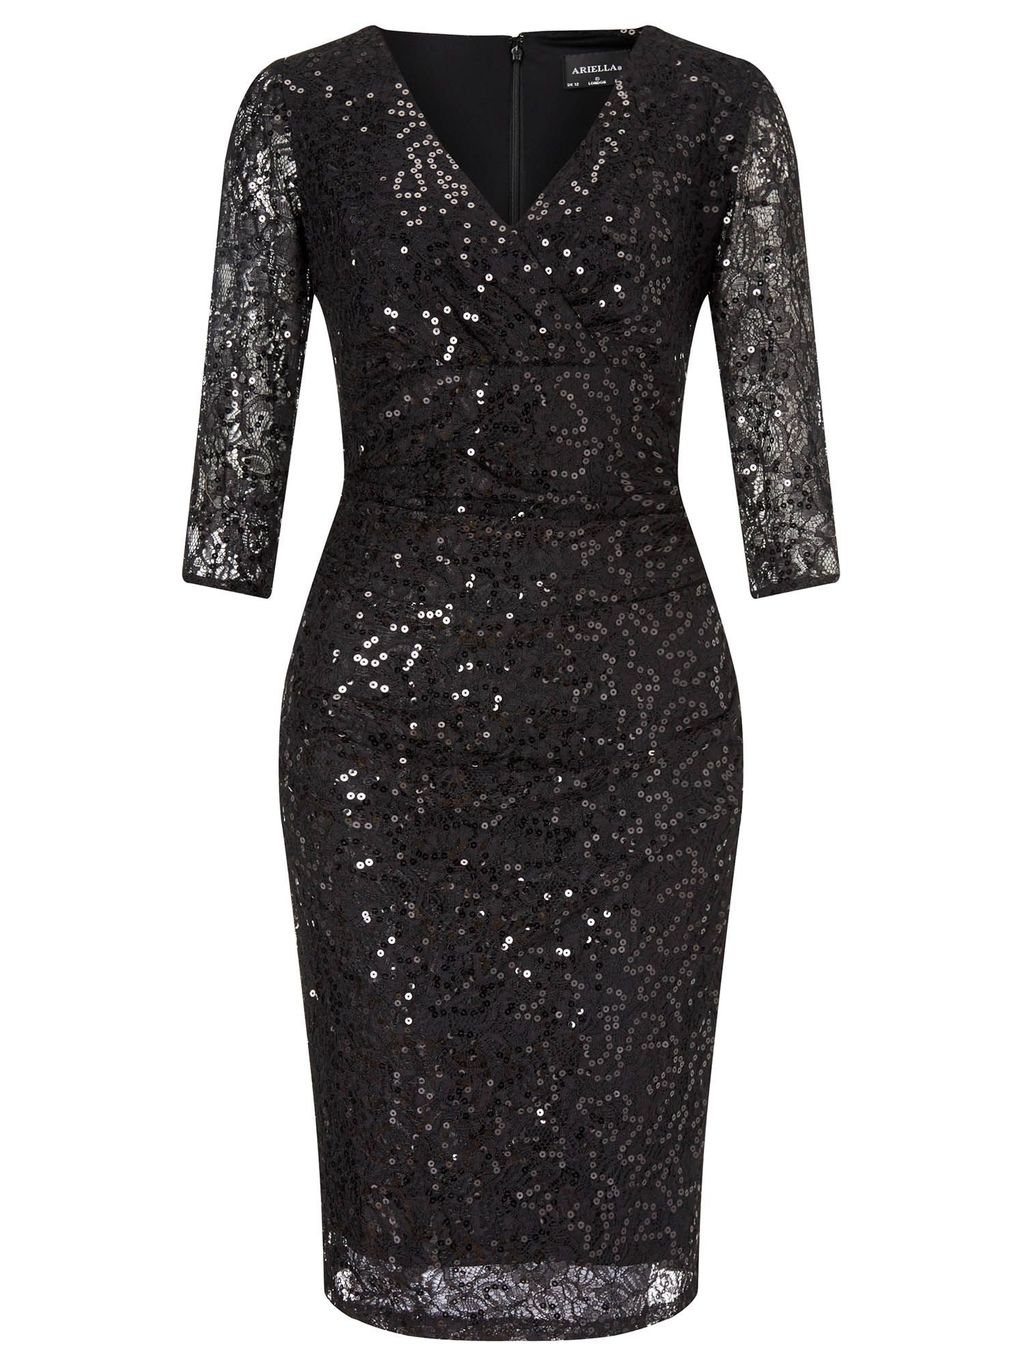 Teresa Short Sequin Cocktail Dress, Black - style: shift; neckline: v-neck; fit: tailored/fitted; pattern: plain; predominant colour: black; occasions: evening; length: just above the knee; fibres: polyester/polyamide - 100%; sleeve length: 3/4 length; sleeve style: standard; texture group: sheer fabrics/chiffon/organza etc.; pattern type: fabric; embellishment: sequins; season: a/w 2015; wardrobe: event